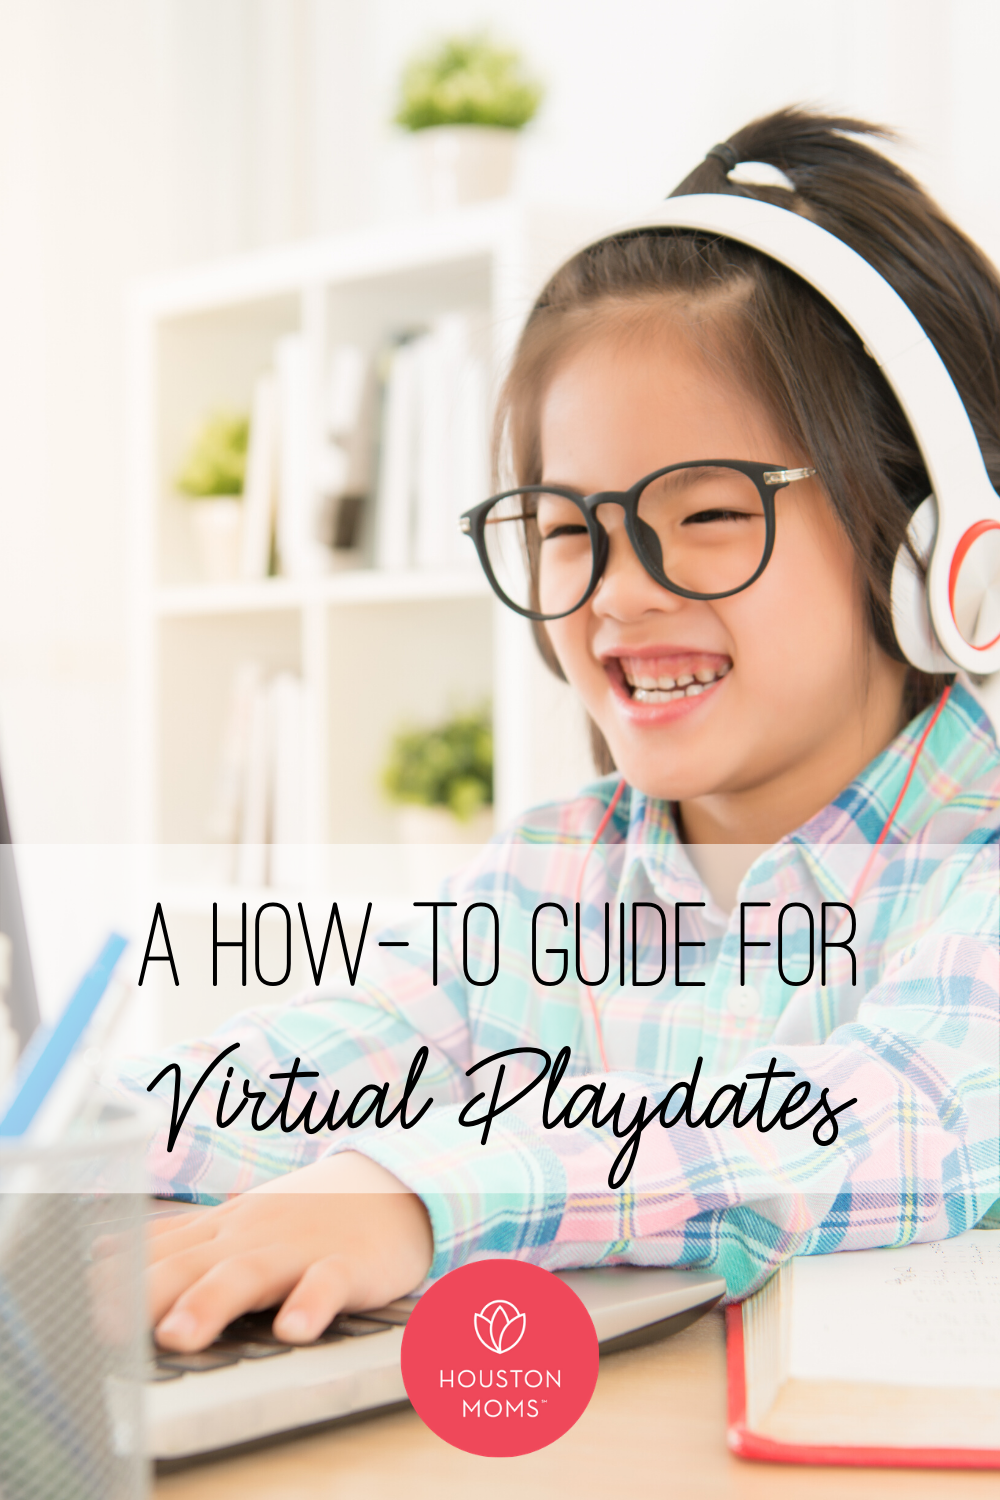 """Houston Moms """"A How-To Guide to Virtual Playdates"""" #houstonmomsblog #houstonmoms #momsaroundhouston"""